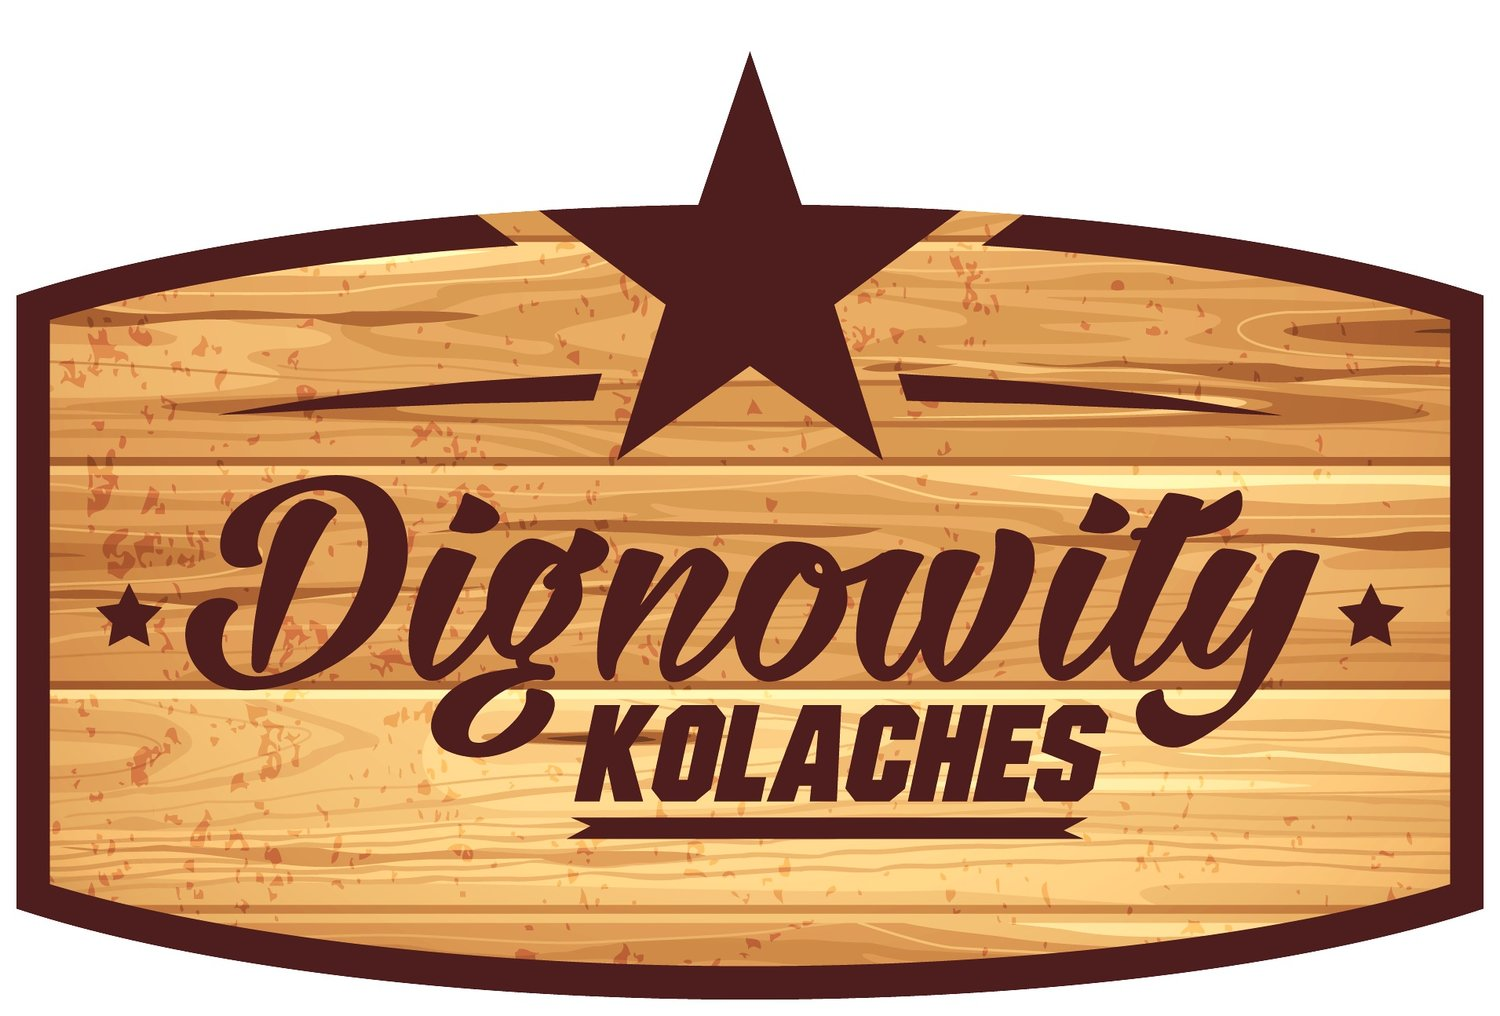 Dignowity Kolaches